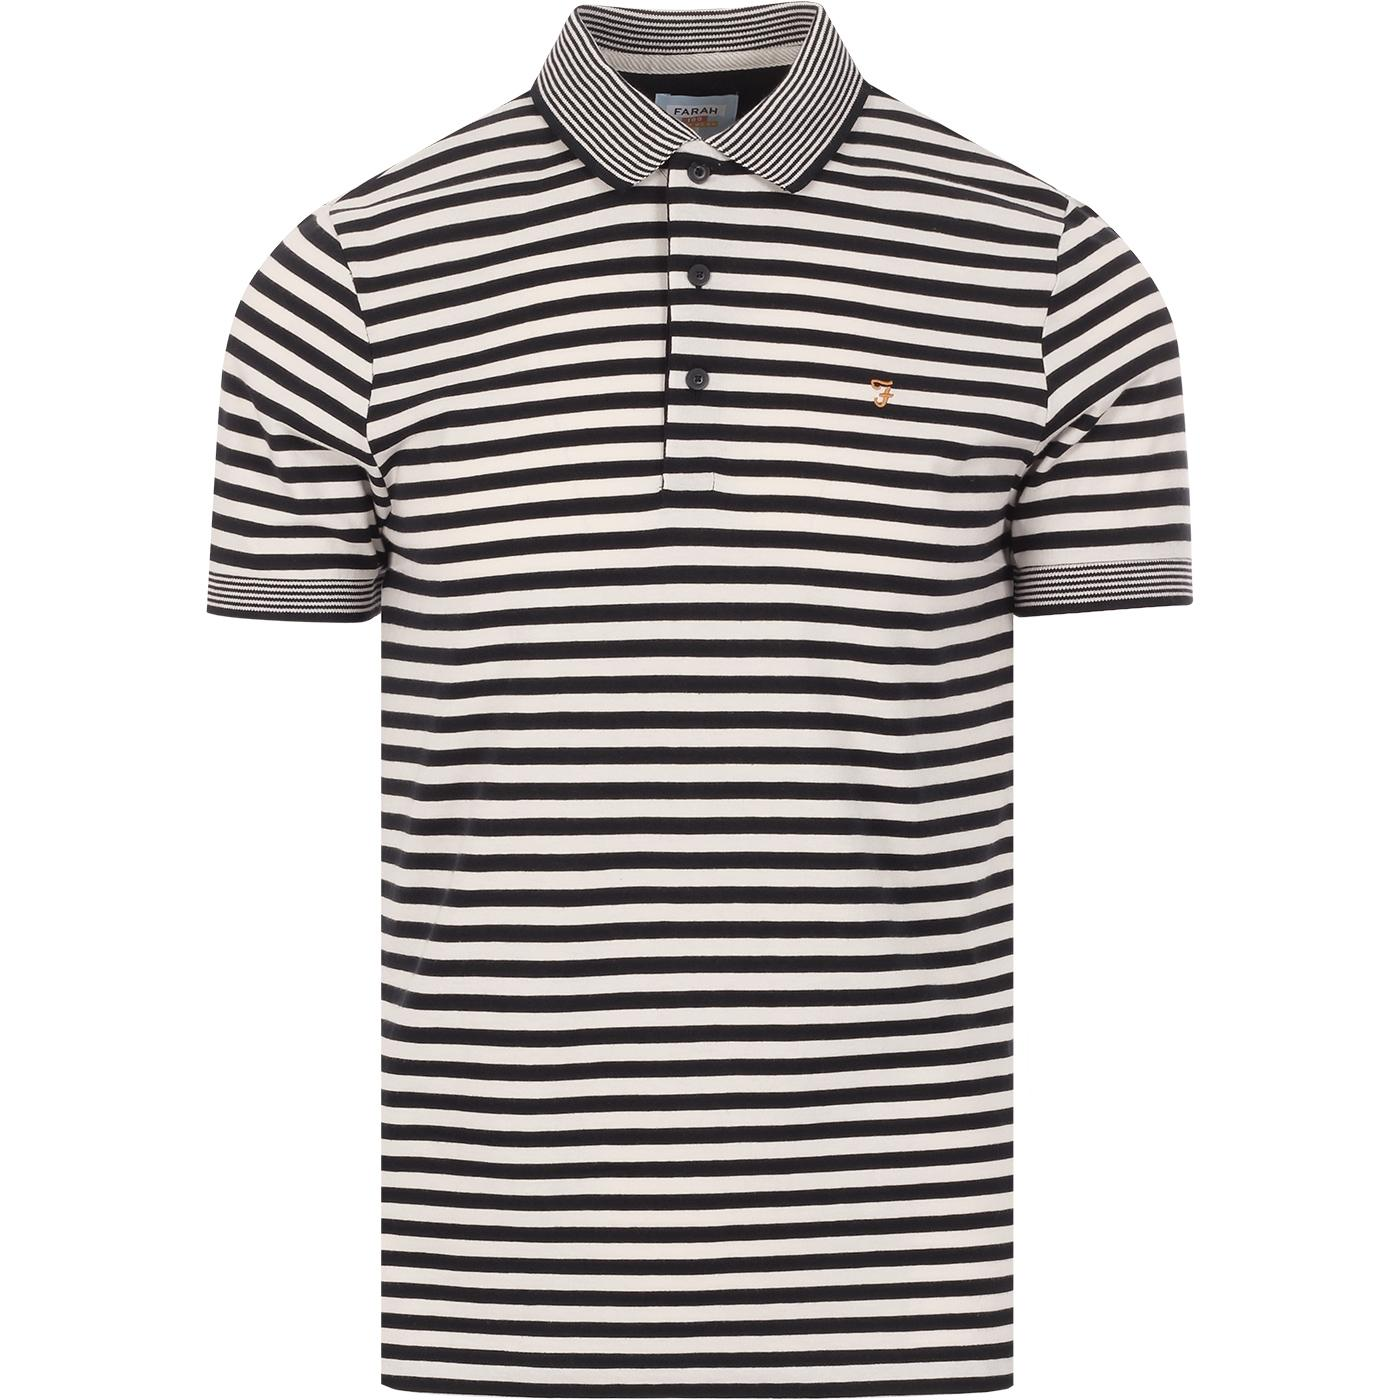 Mesa FARAH 100 Retro Mod Stripe Jersey Polo Top